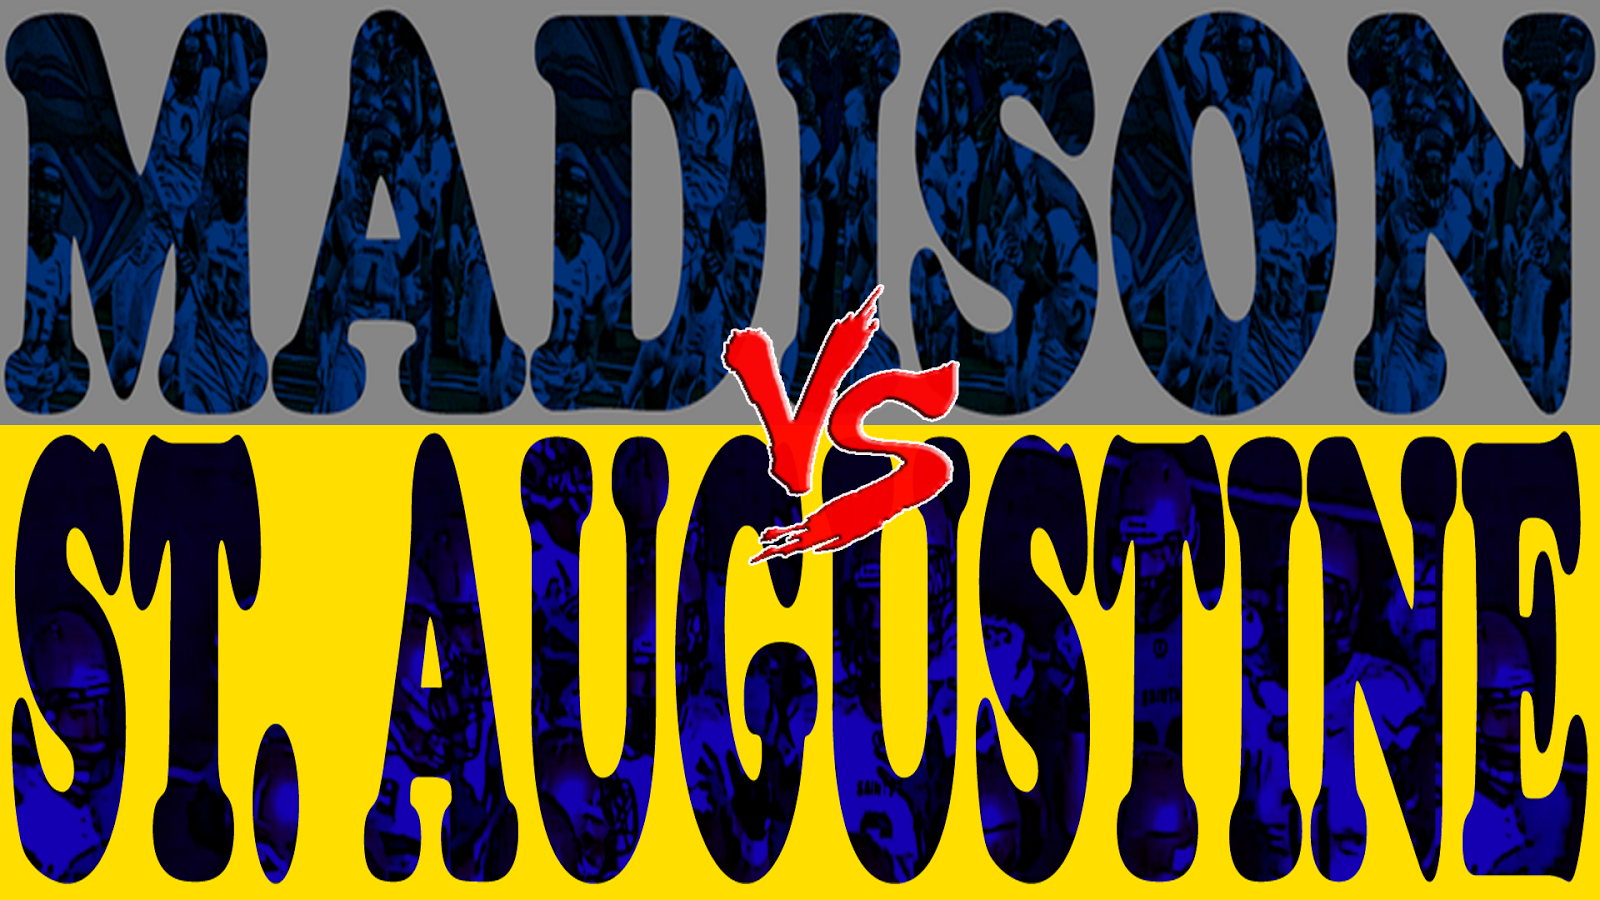 descartes vs st augustine Hello everyone, please post your observations and interpretations of the differences and similarities between plato and augustine below please read your colleagues' posts carefully and add, expand, respond mindfully, if your point is already included.